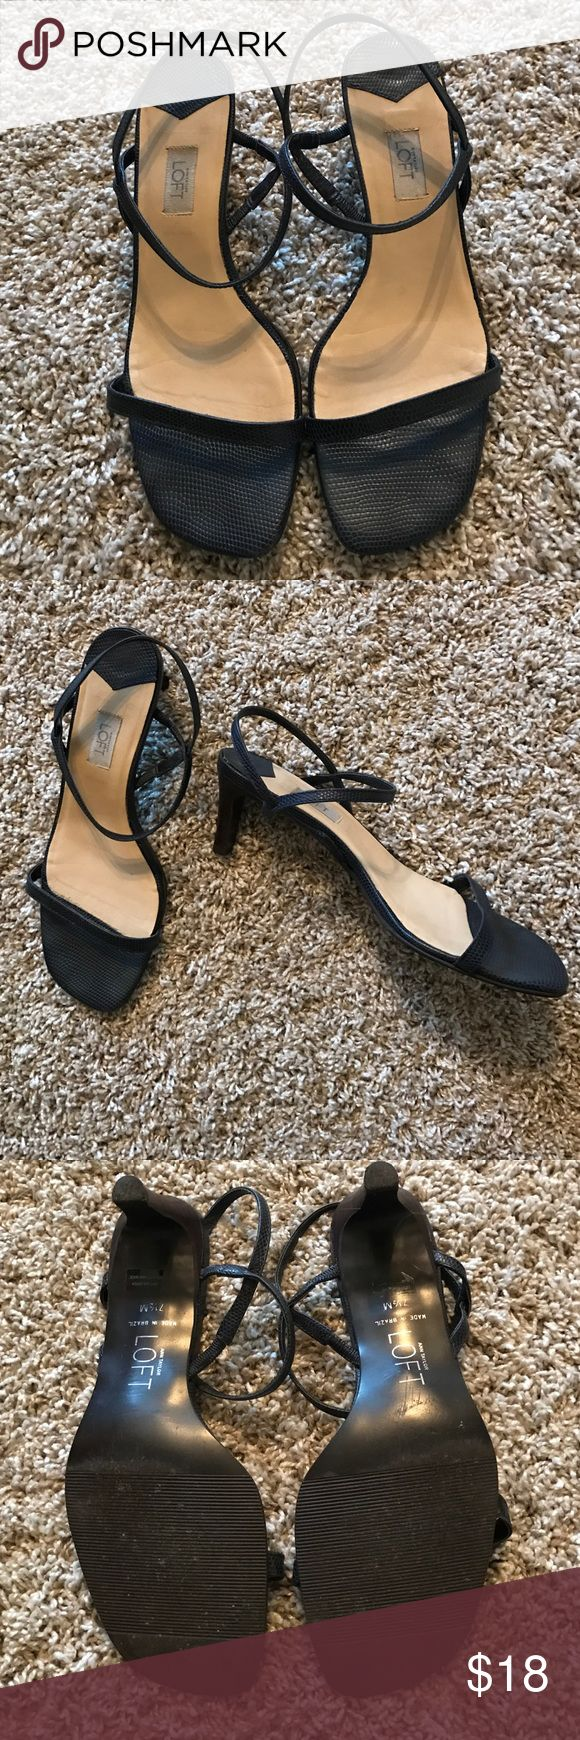 Ann Taylor Loft dressy navy heel sandals Ann Taylor Loft Navy dressy heel sandals. Size 7 1/2. Heel size 2 3/4 inches. Cute and classy. Leather upper. Make an offer. Ann Taylor Loft Shoes Heels